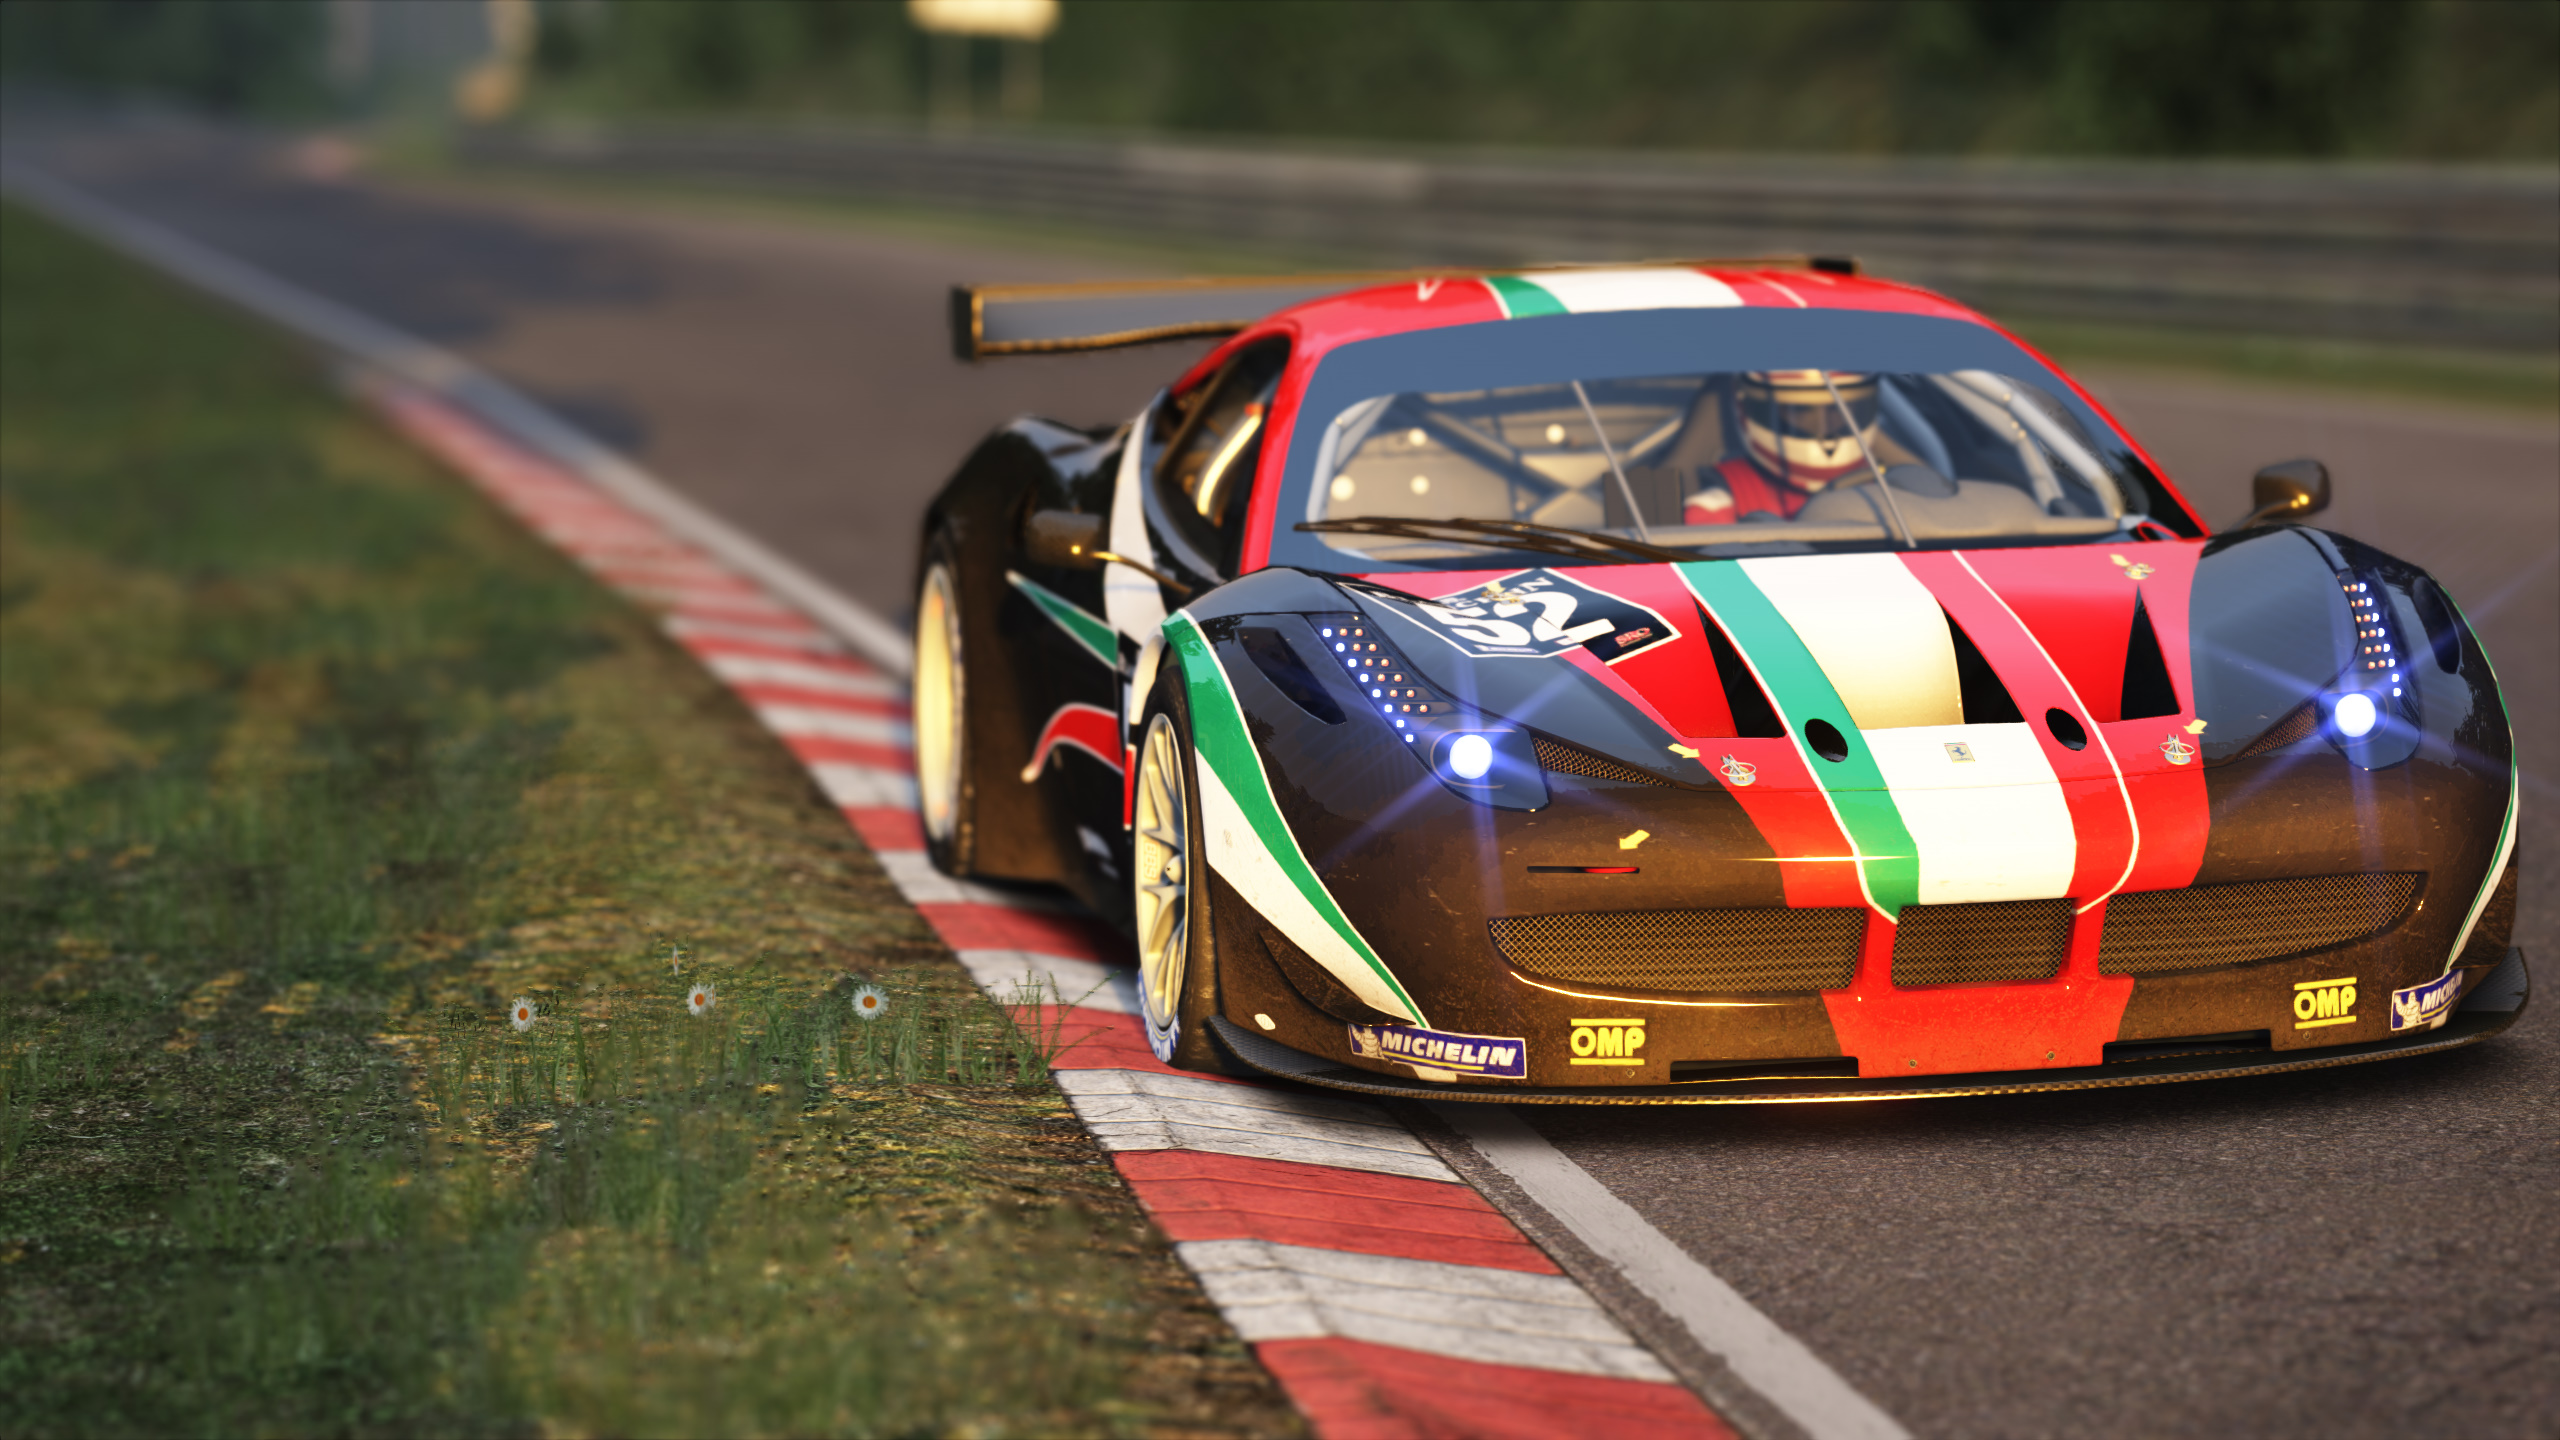 49 Assetto Corsa Hd Wallpapers Background Images